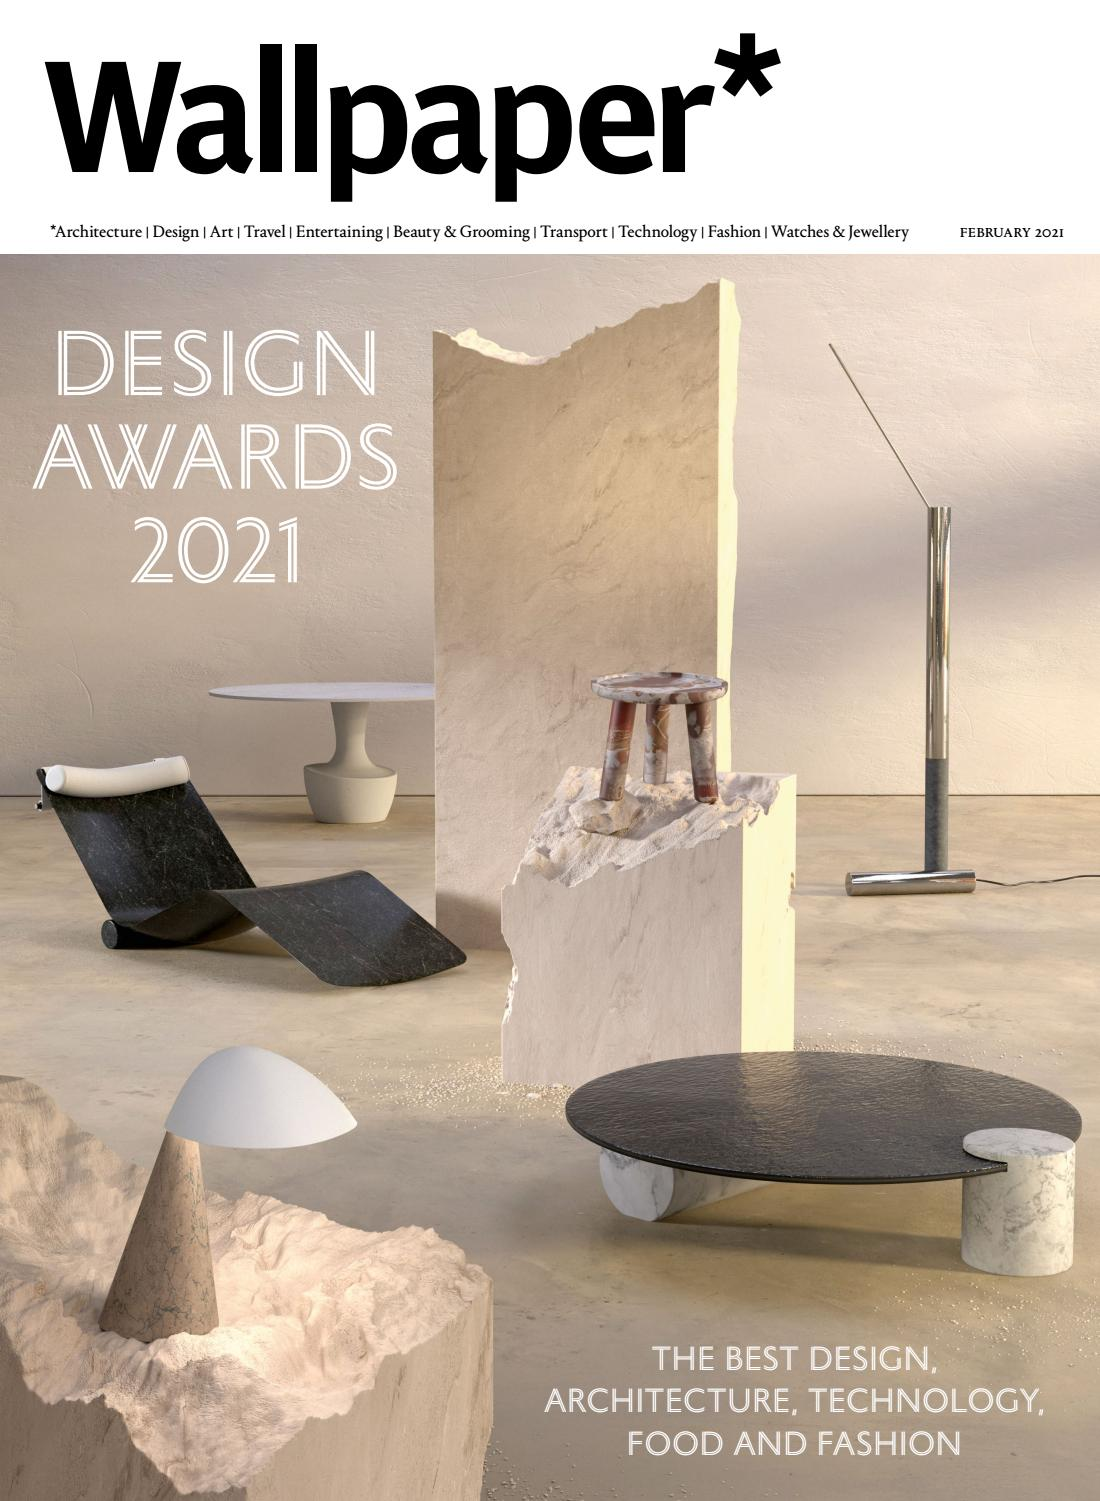 Wallpaper February 2021 Issue By Wallpaper Magazine Issuu